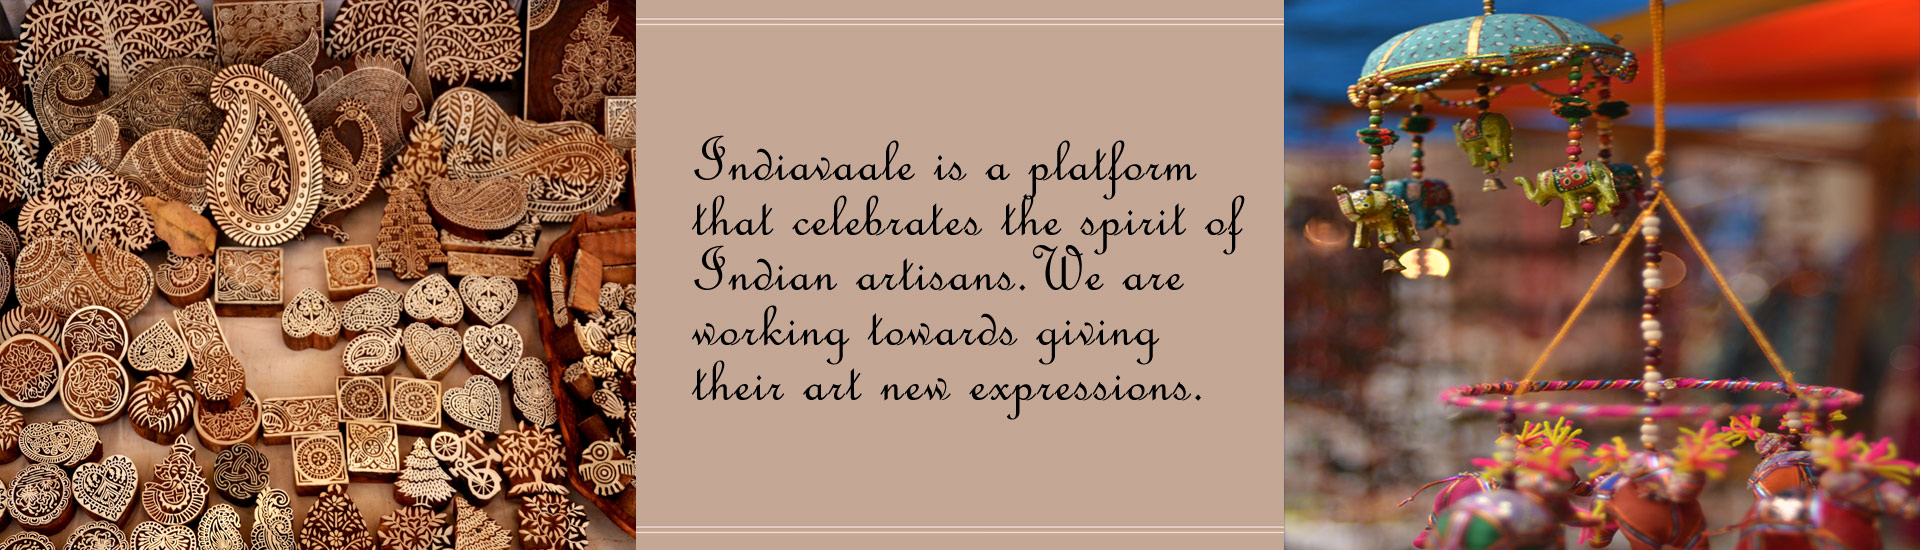 about-indiavaale